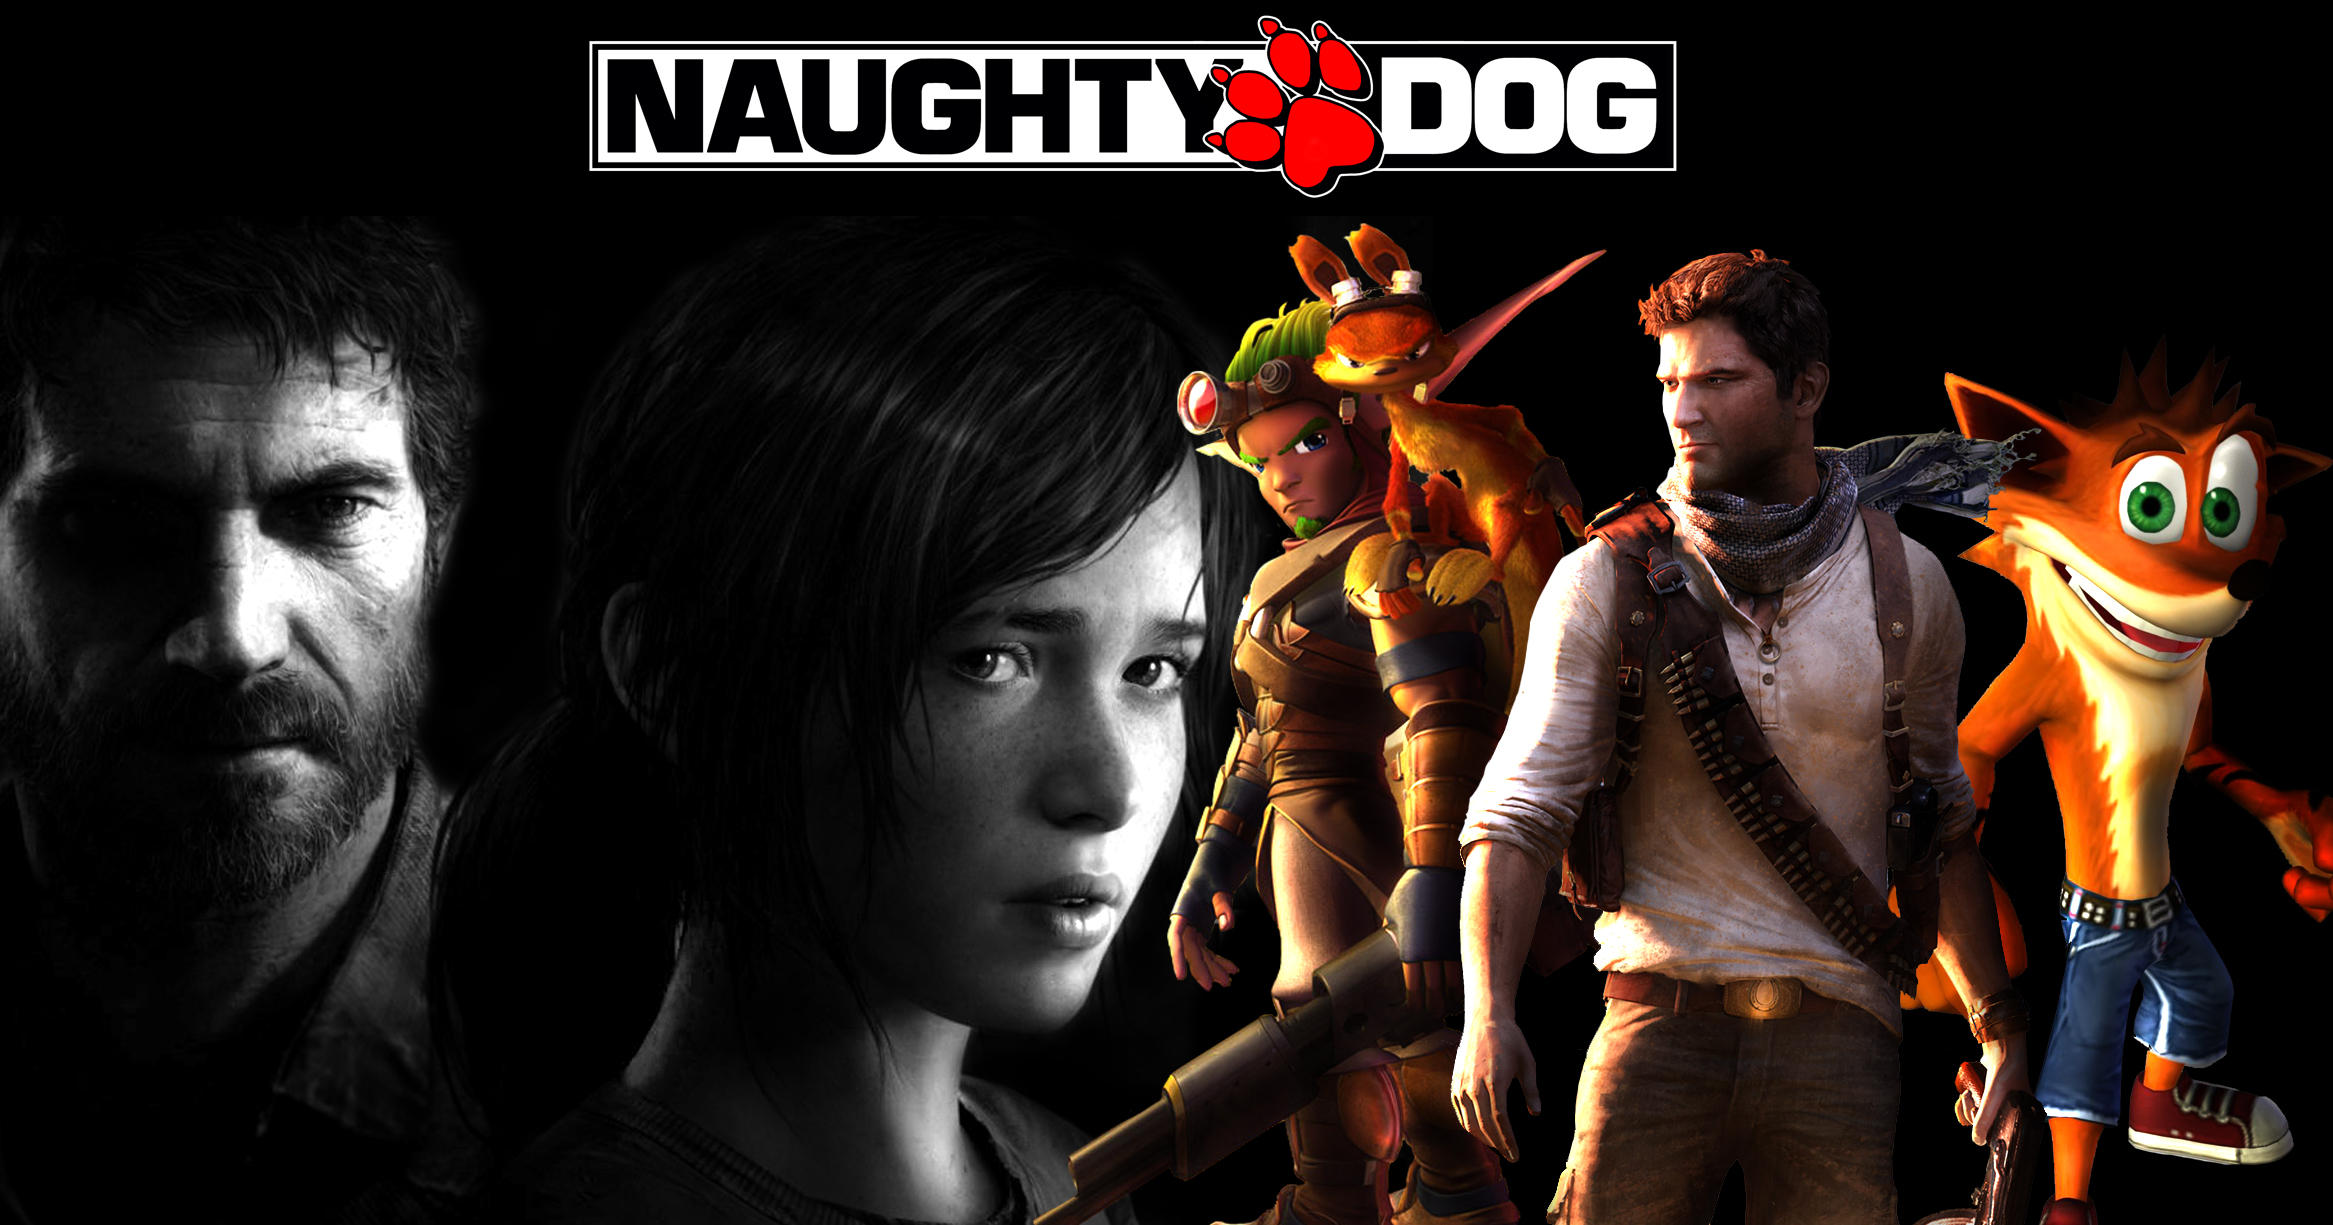 Up to 75% off Naughty Dog Games Sale @ PlayStation Store